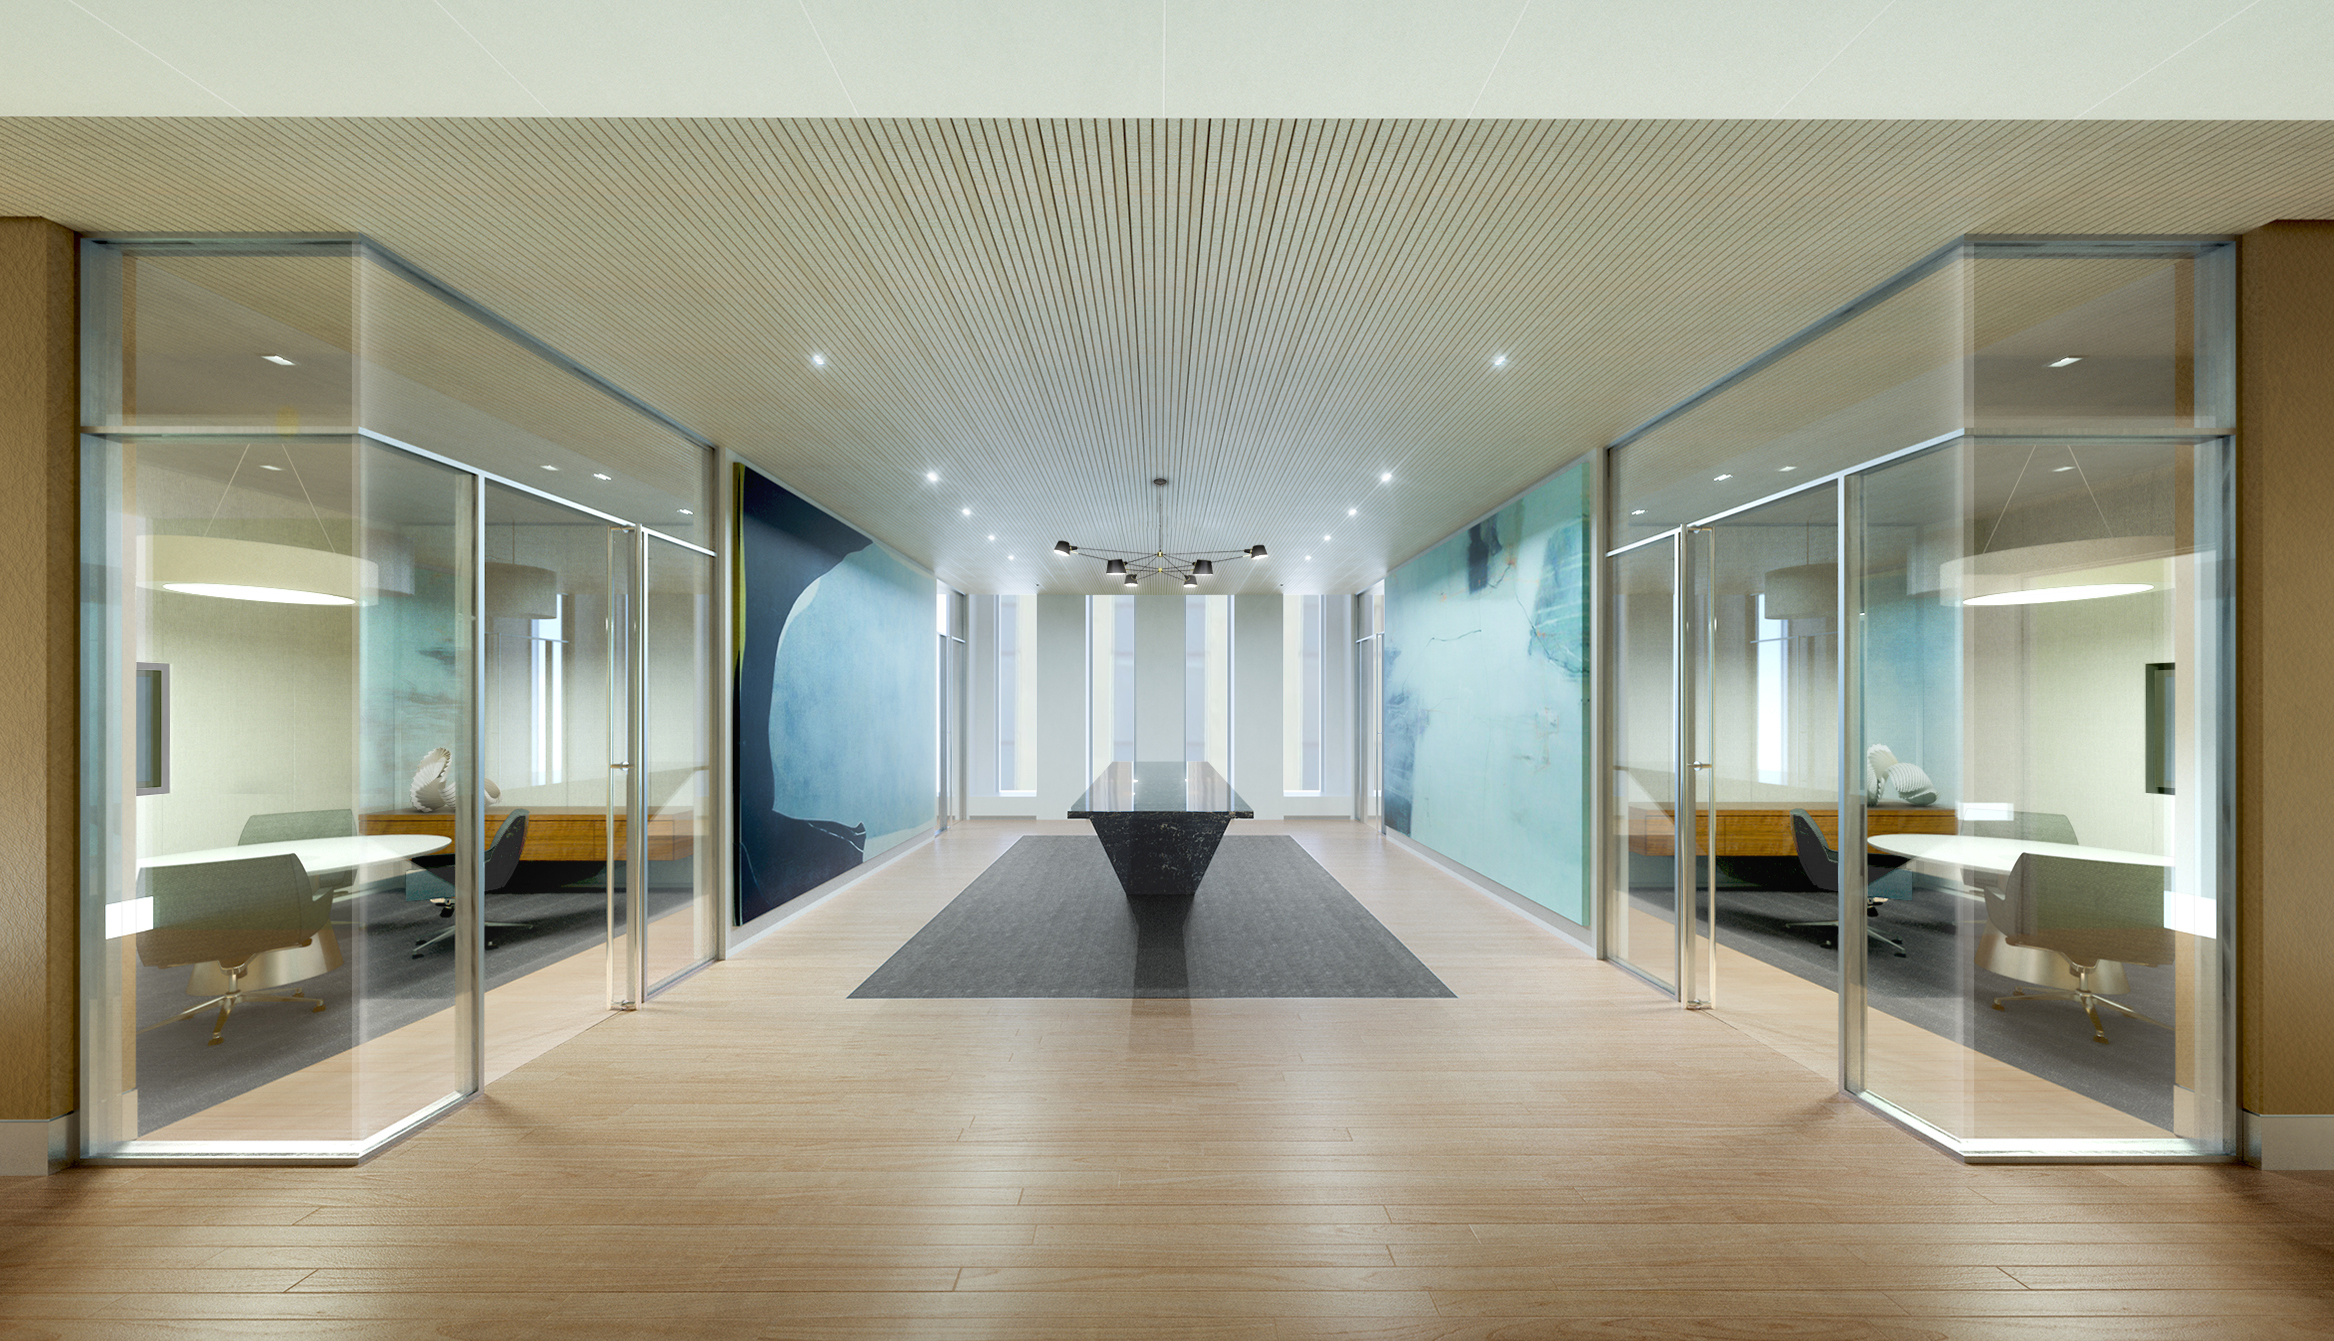 OFFICE BREAKOUT CONCEPT  New York City, New York | Client: HOK NYC